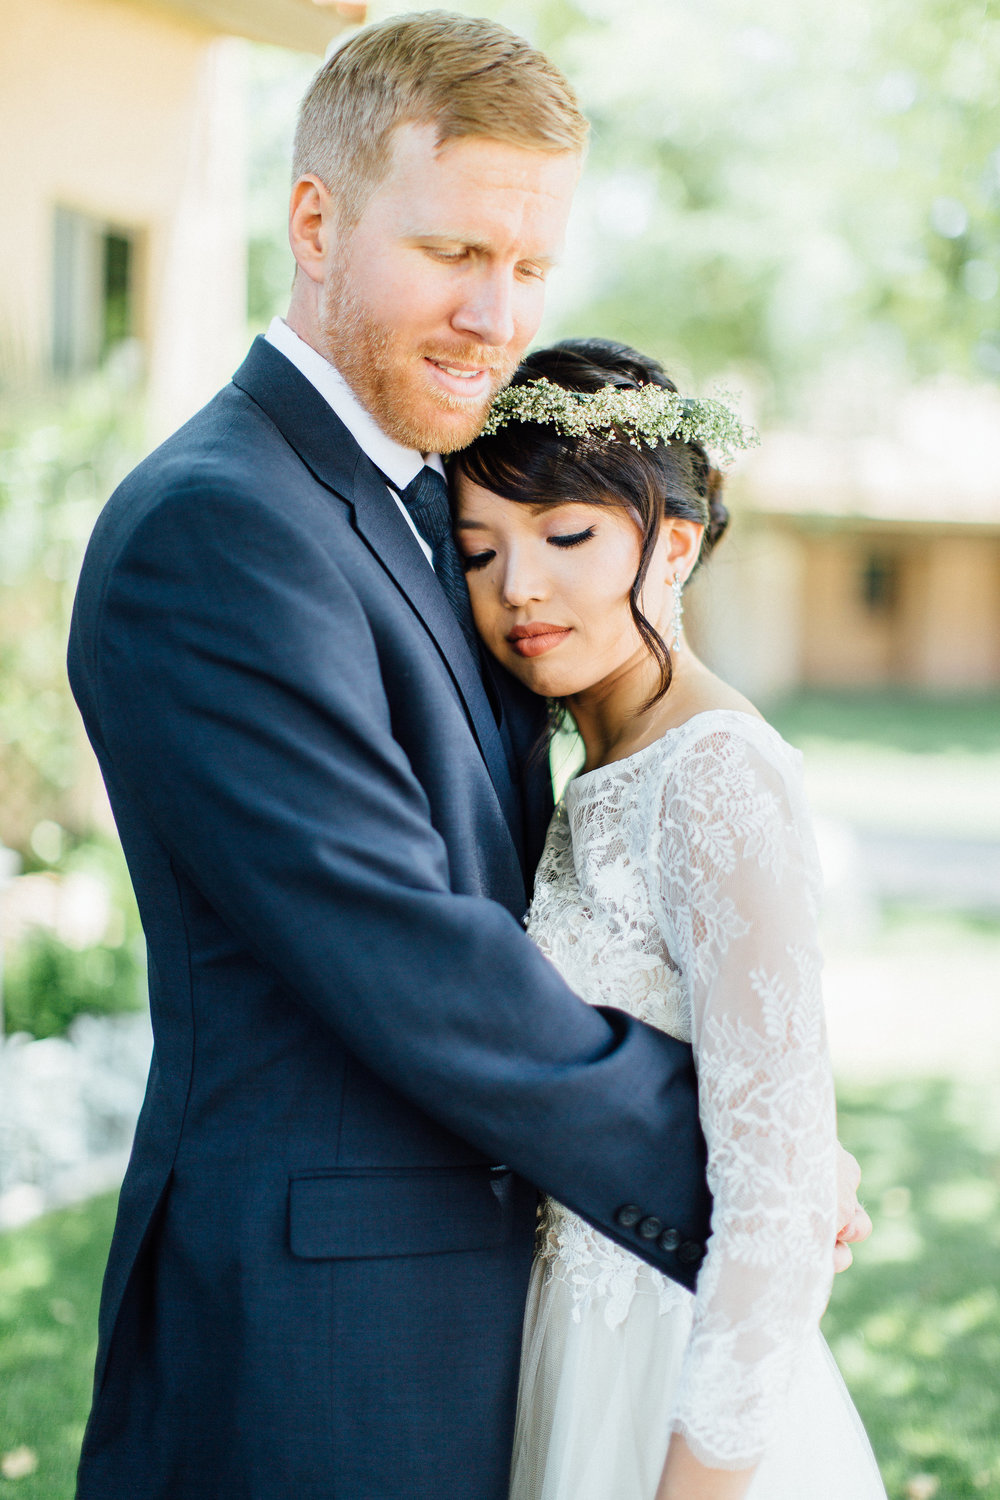 featured brides bridal4thewin annie booked an on location beauty service in the convenience of her own home scottsdale airbrush makeup and bridal up do hair artist lidia win